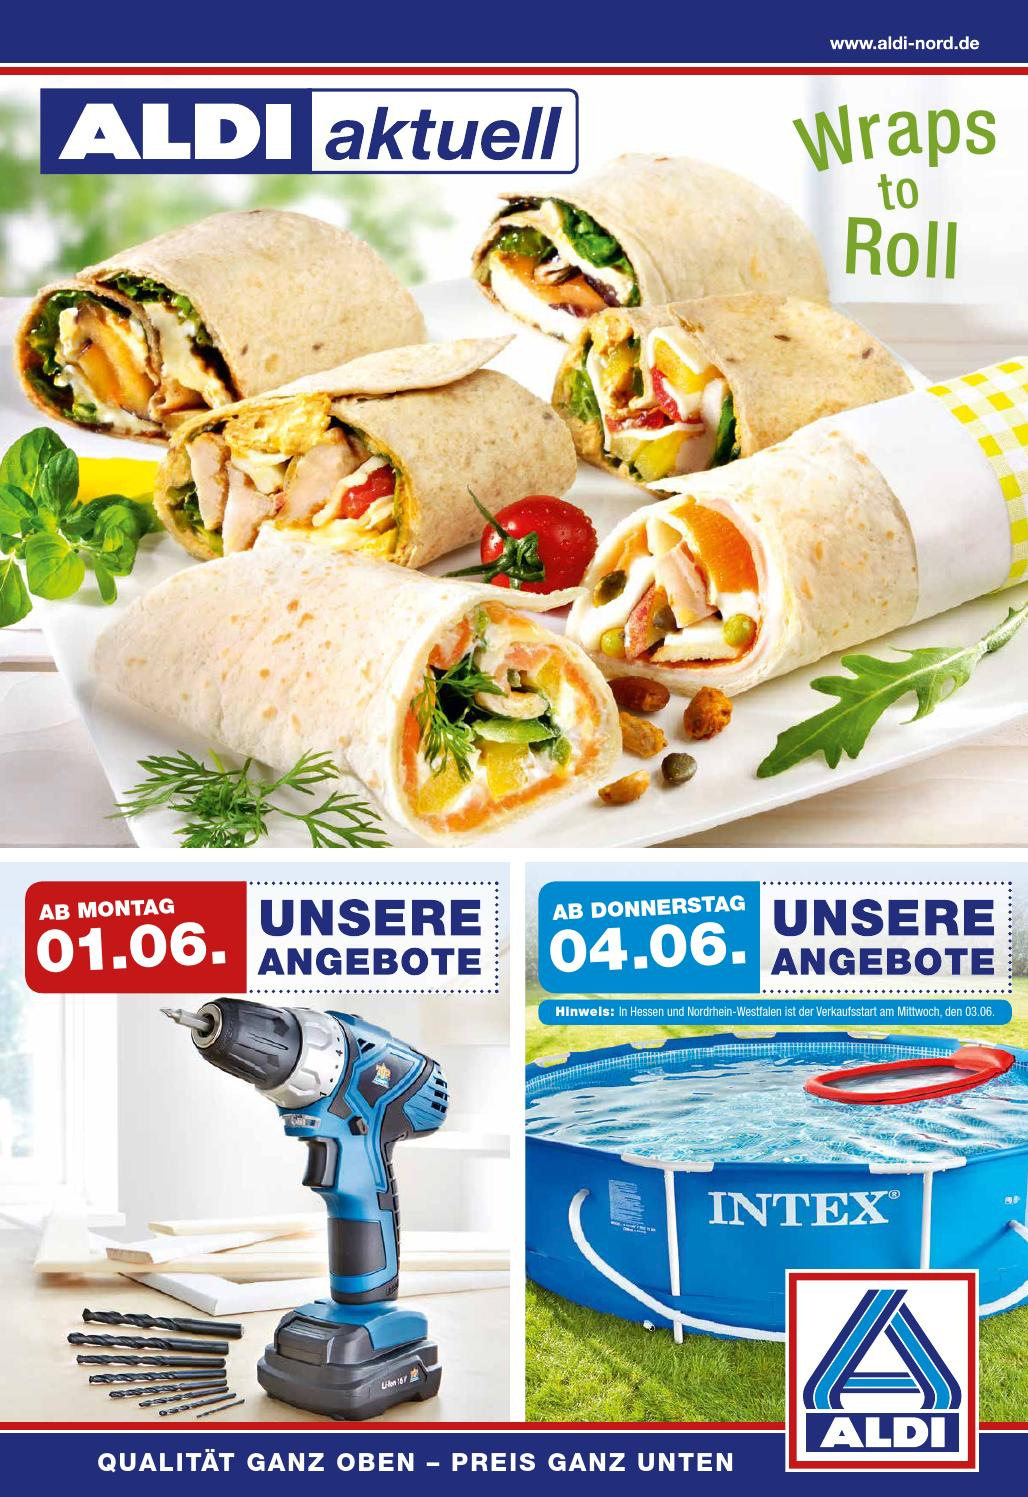 Aldi nord angebote 1 6juni2015 by issuu for Gartenpool aldi nord 2015